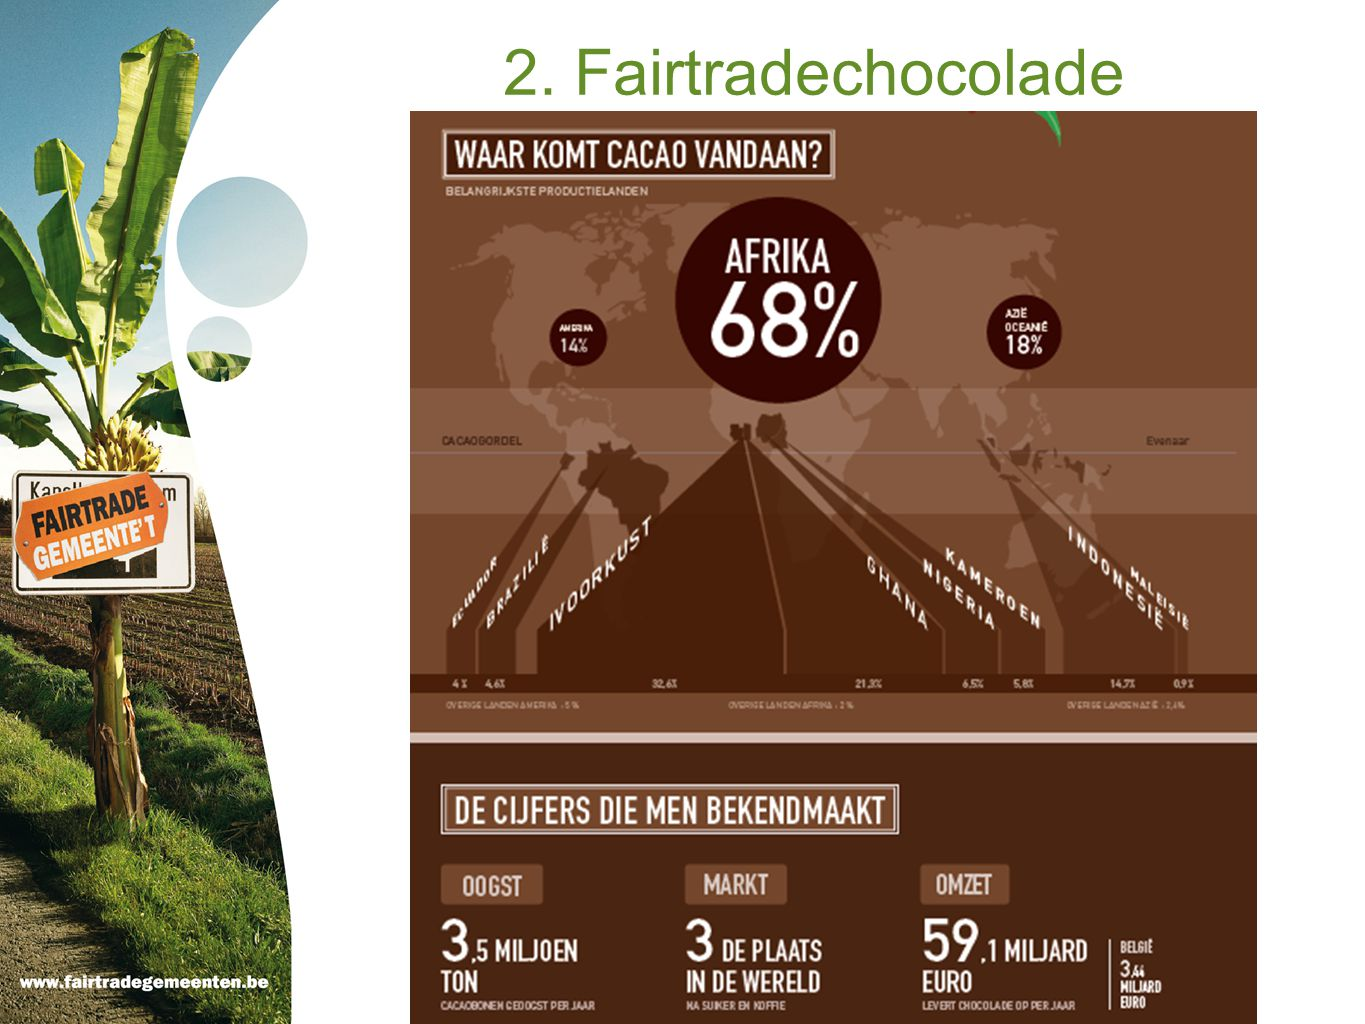 2. Fairtradechocolade